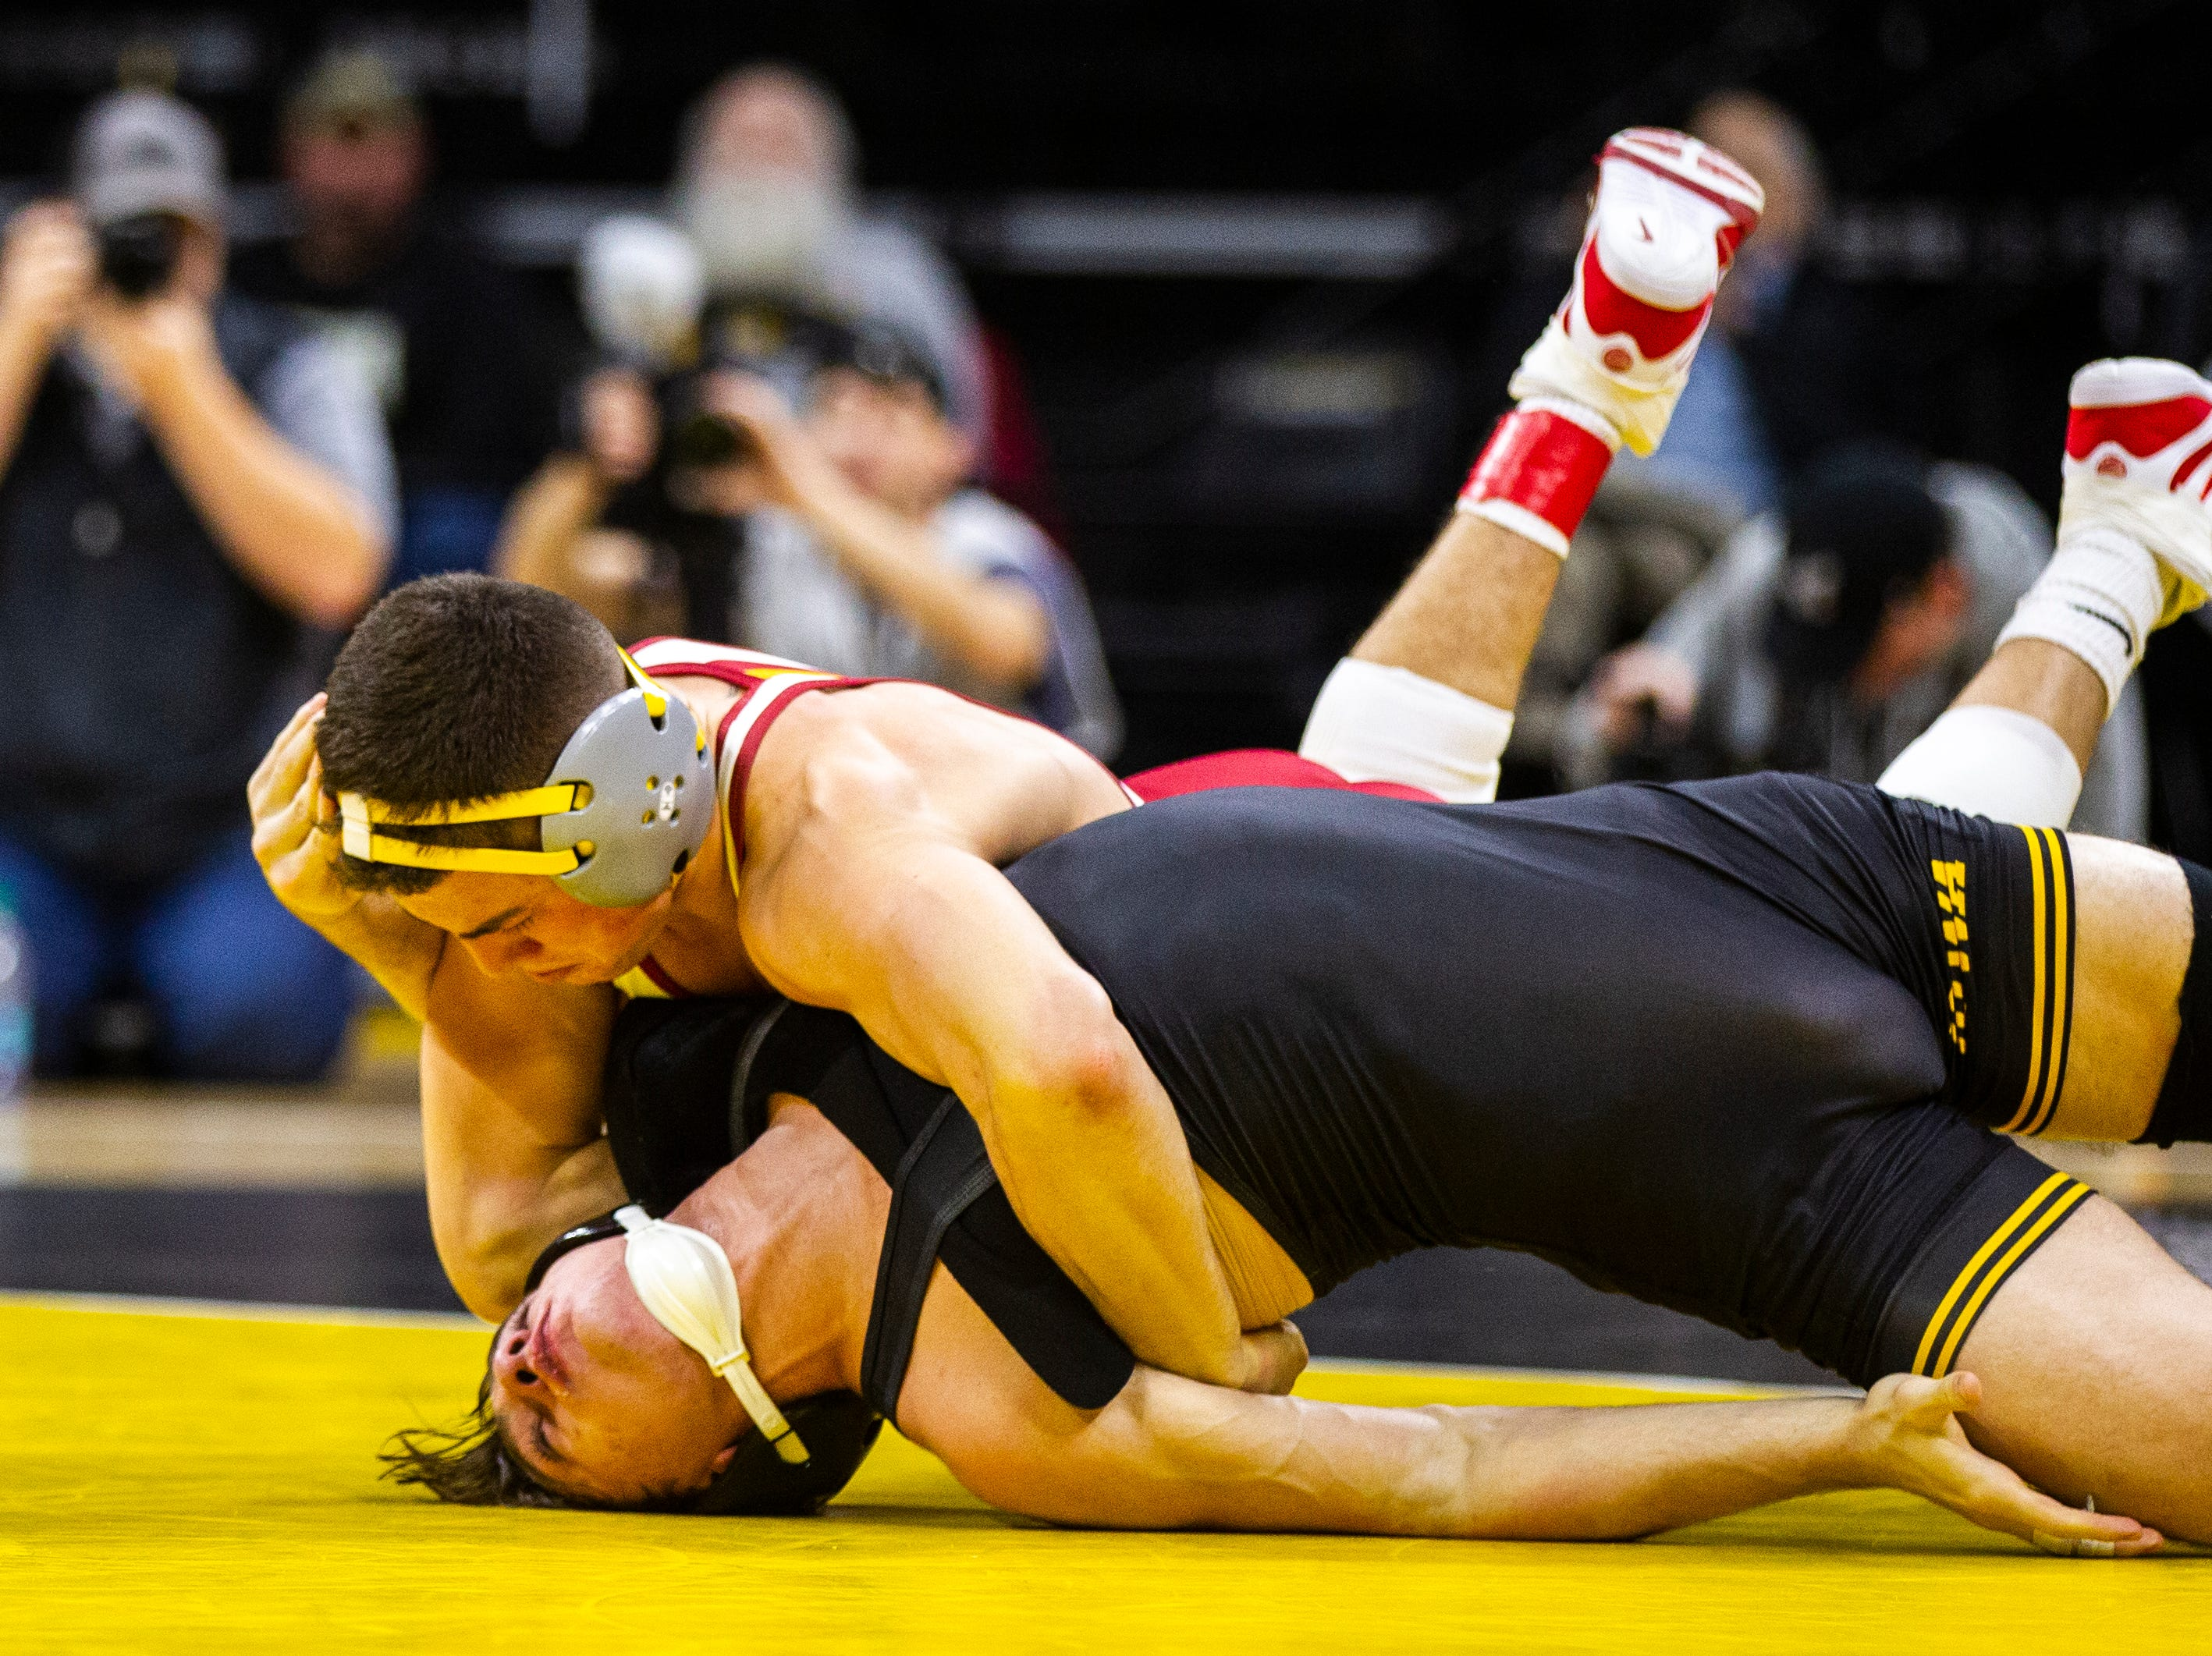 Iowa State's Austin Gomez, left, wrestles Iowa's Austin DeSanto at 133 during a NCAA Cy-Hawk series wrestling dual on Saturday, Dec. 1, 2018, at Carver-Hawkeye Arena in Iowa City.